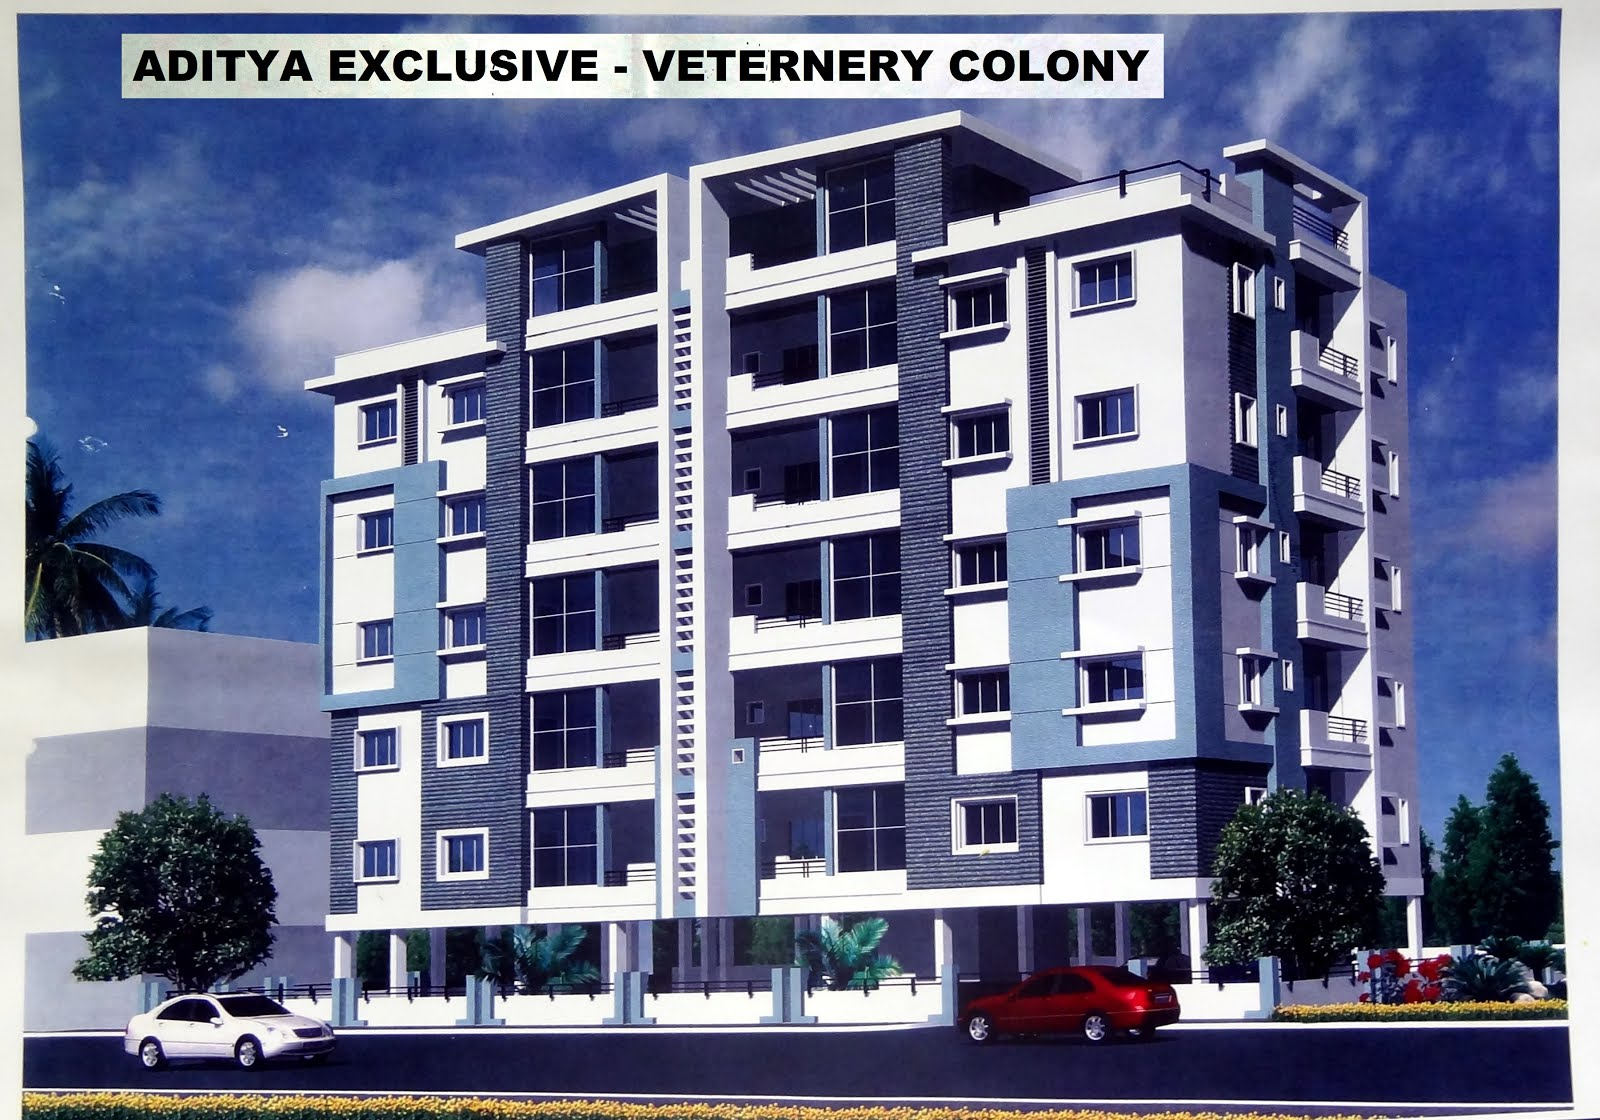 ADITYA EXCLUSIVE 303_VETERINERY COLONY SHAIKPET